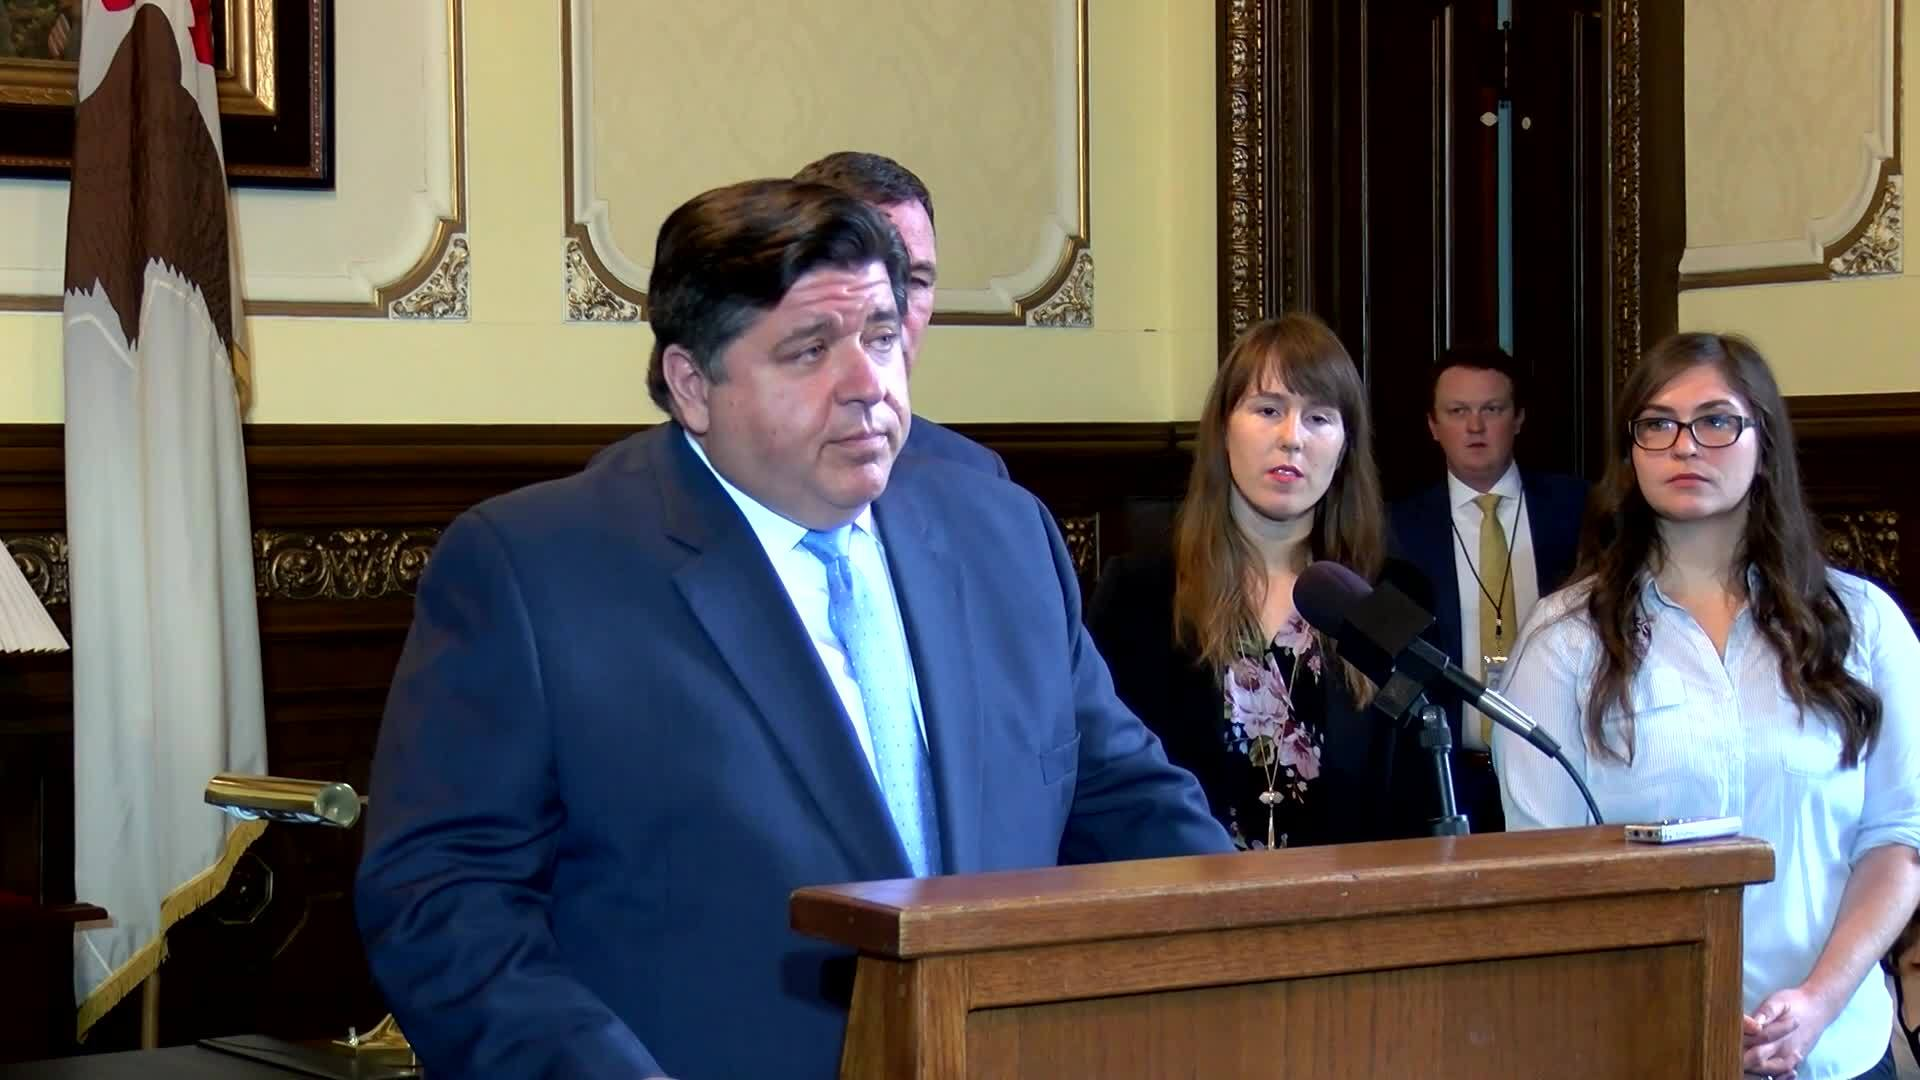 Pritzker_scolds_Trump_s_rhetoric_after_s_8_20190430180716